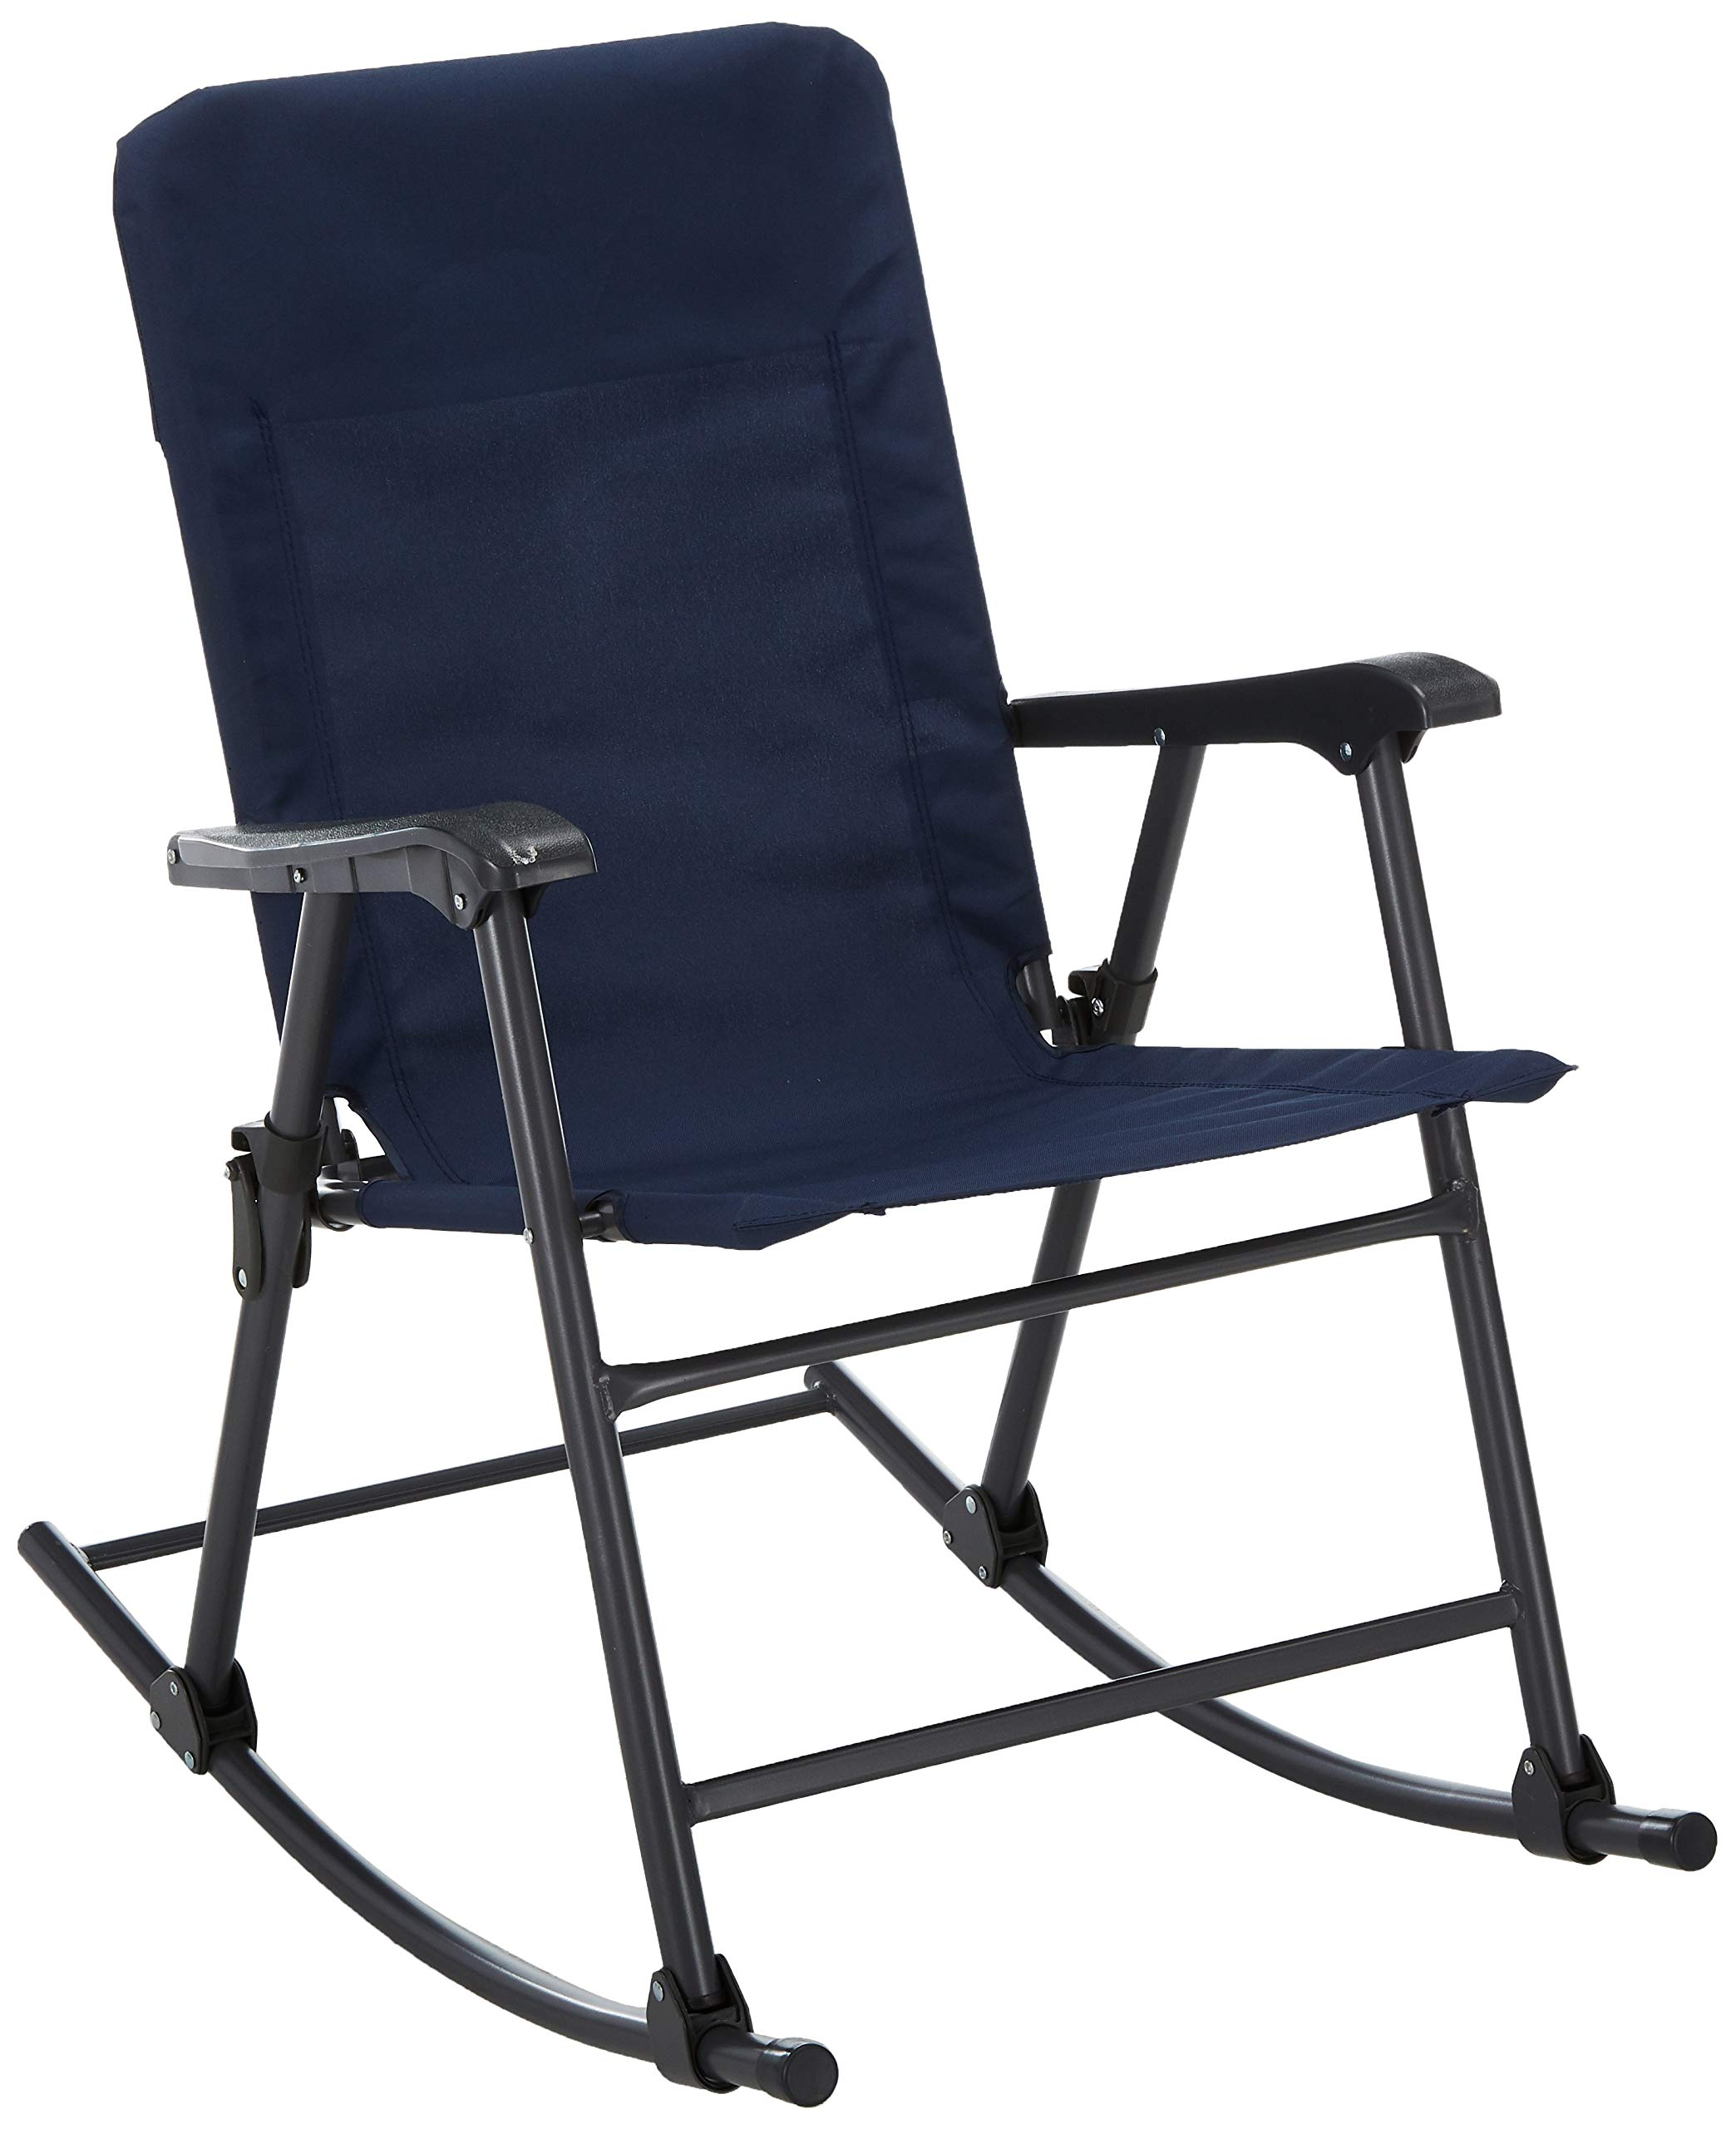 Prime Products 13-6501 Elite Folding Rocker by Prime Products